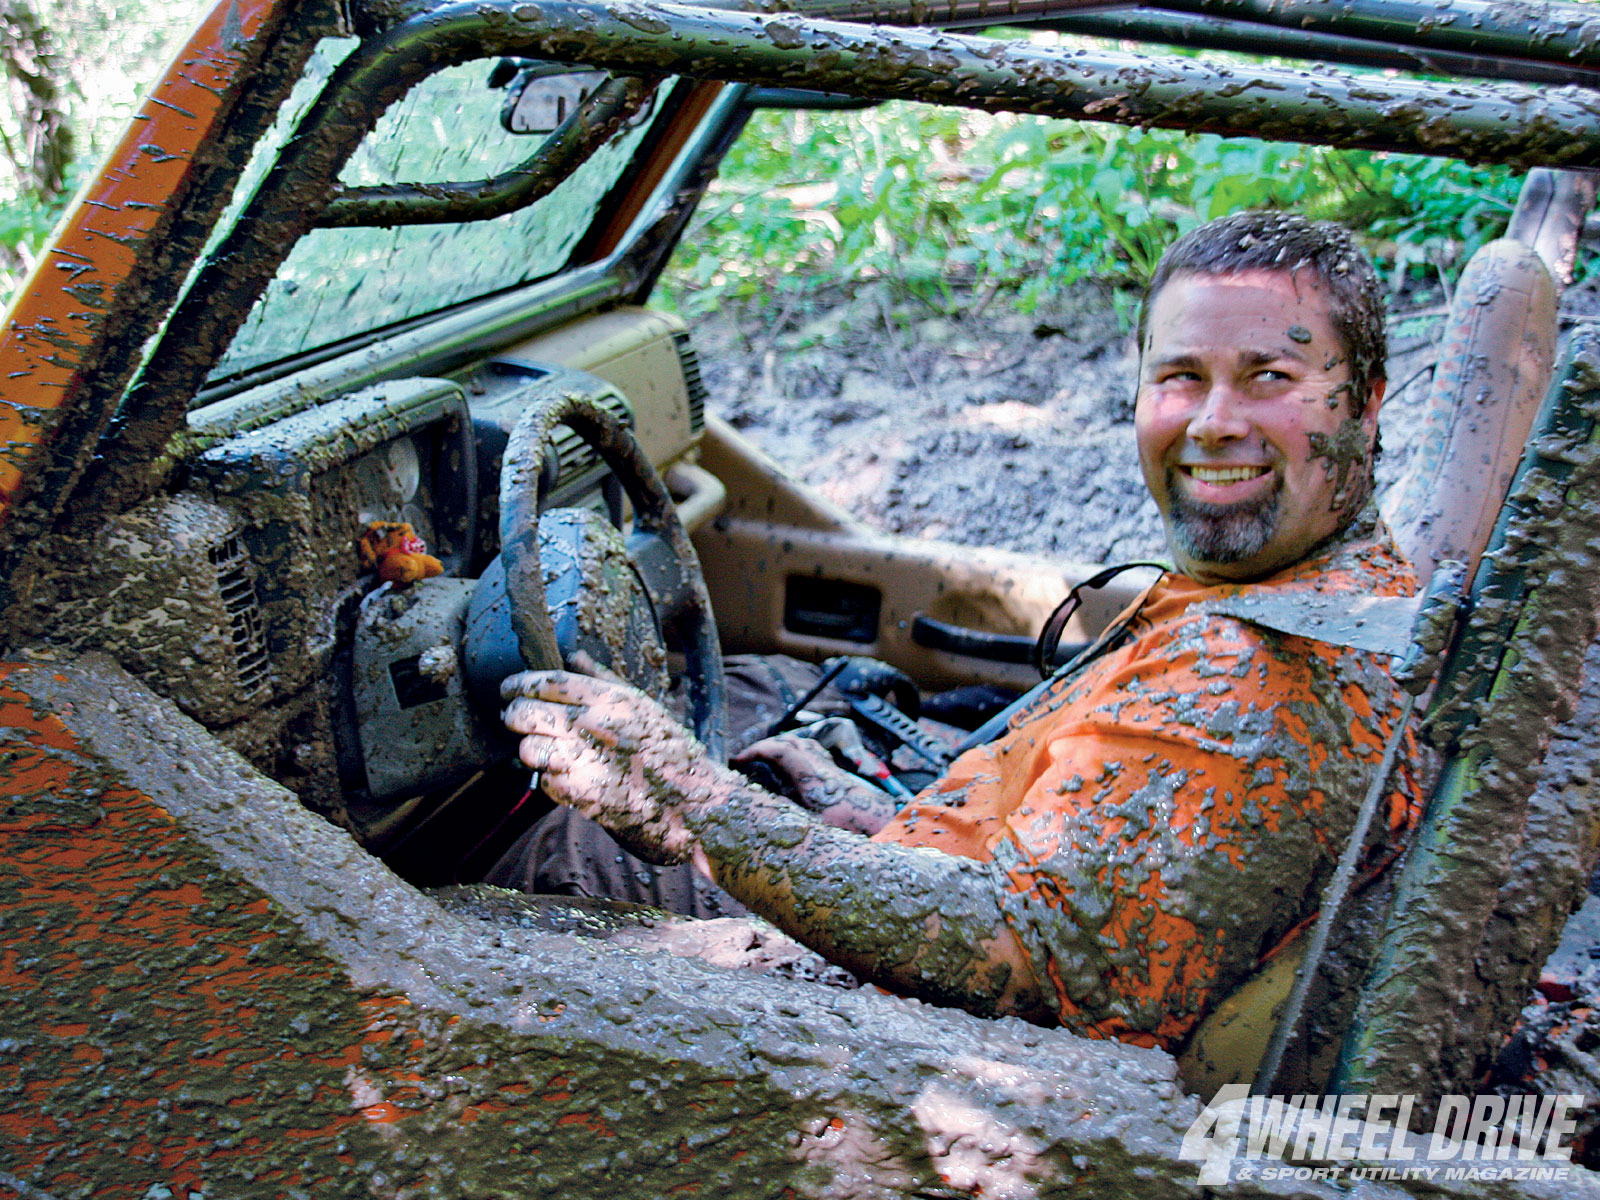 This shot pretty much sums up day one of Trail Tour 2010. Carl Yarbrough of Old Town Customs is all smiles after giving the mud his all in his custom TJ. The result? Mud: 1, Carl: 0. He buried the Jeep (and himself) and had to resort to the winch cable.